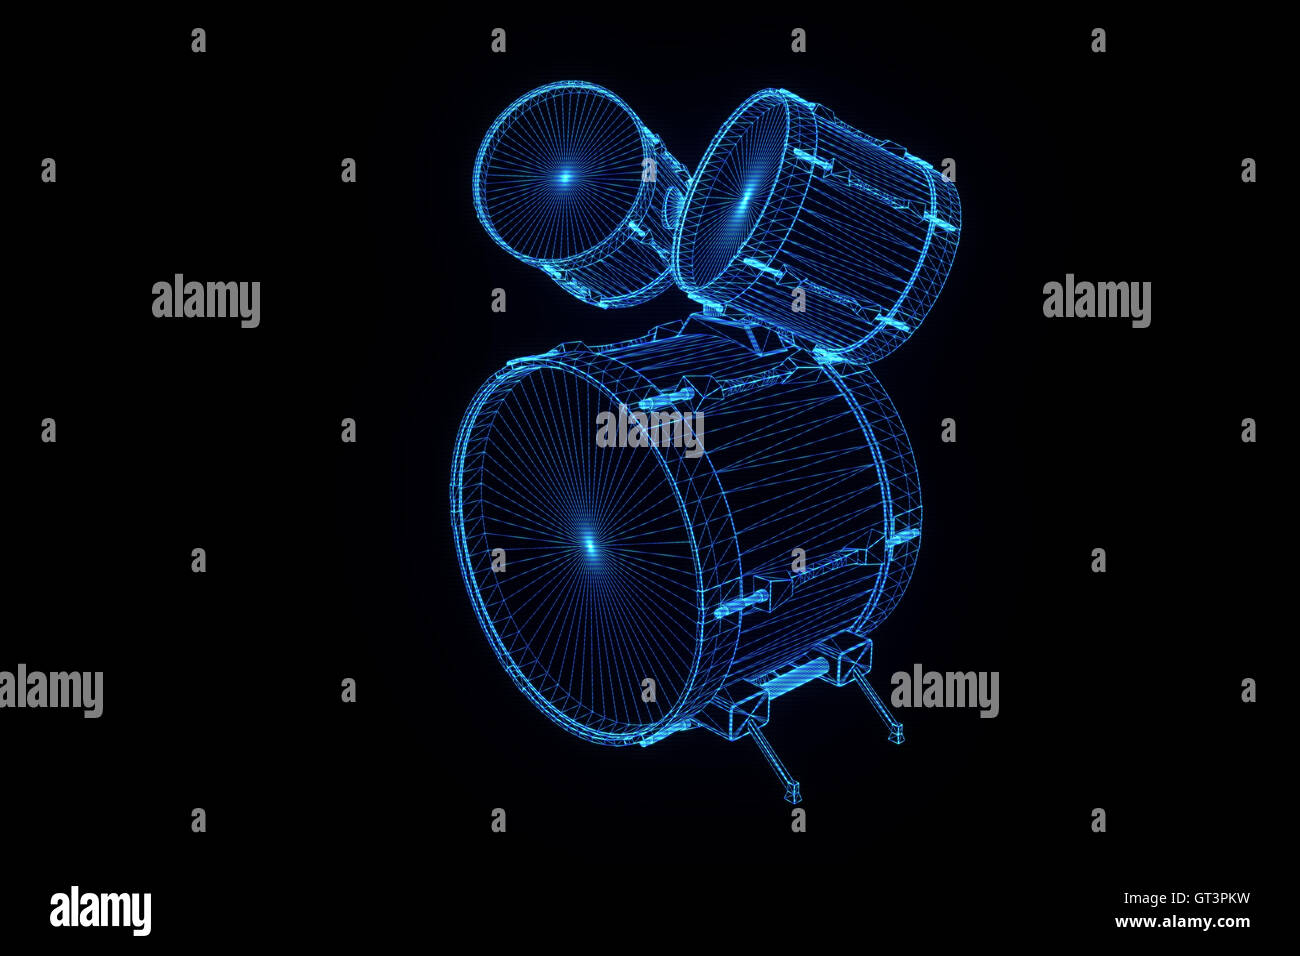 Nice 3D Drums in Wireframe or Hologram Style  Digital made